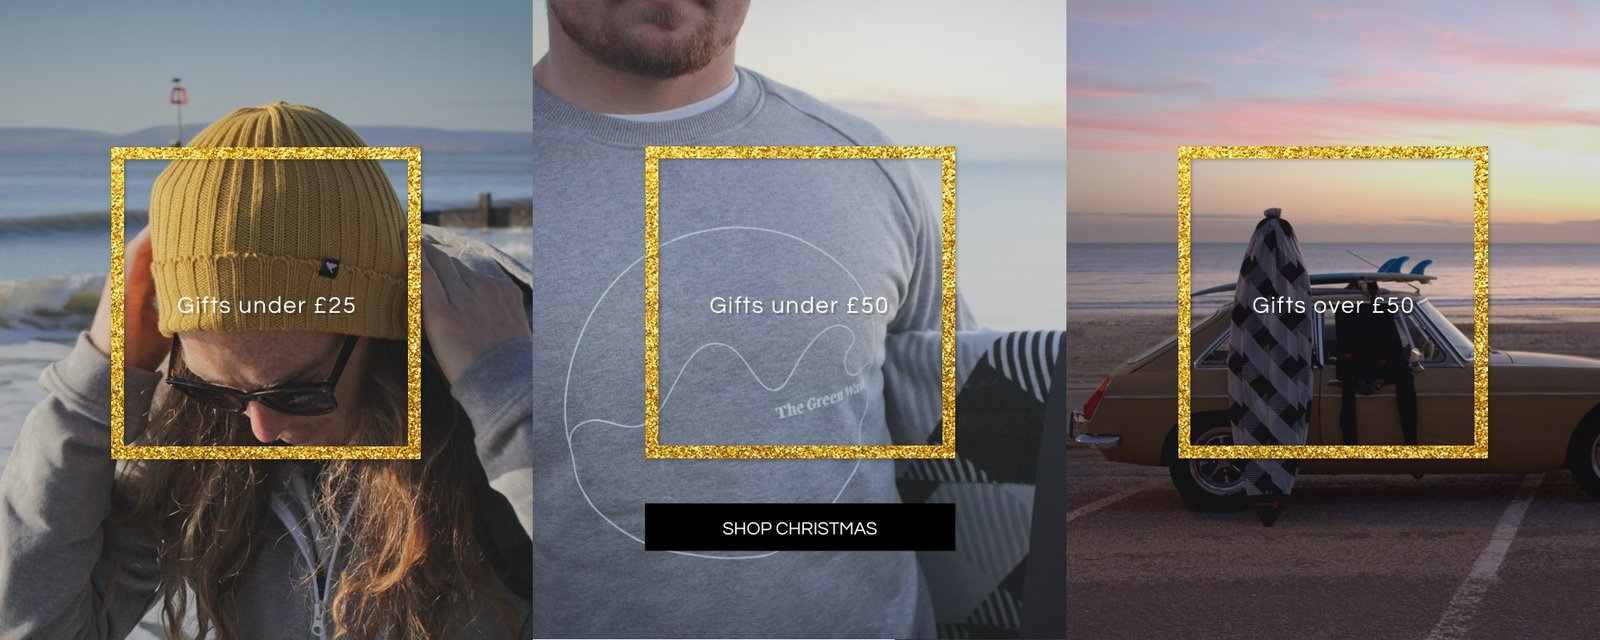 The Green Wave Christmas shop